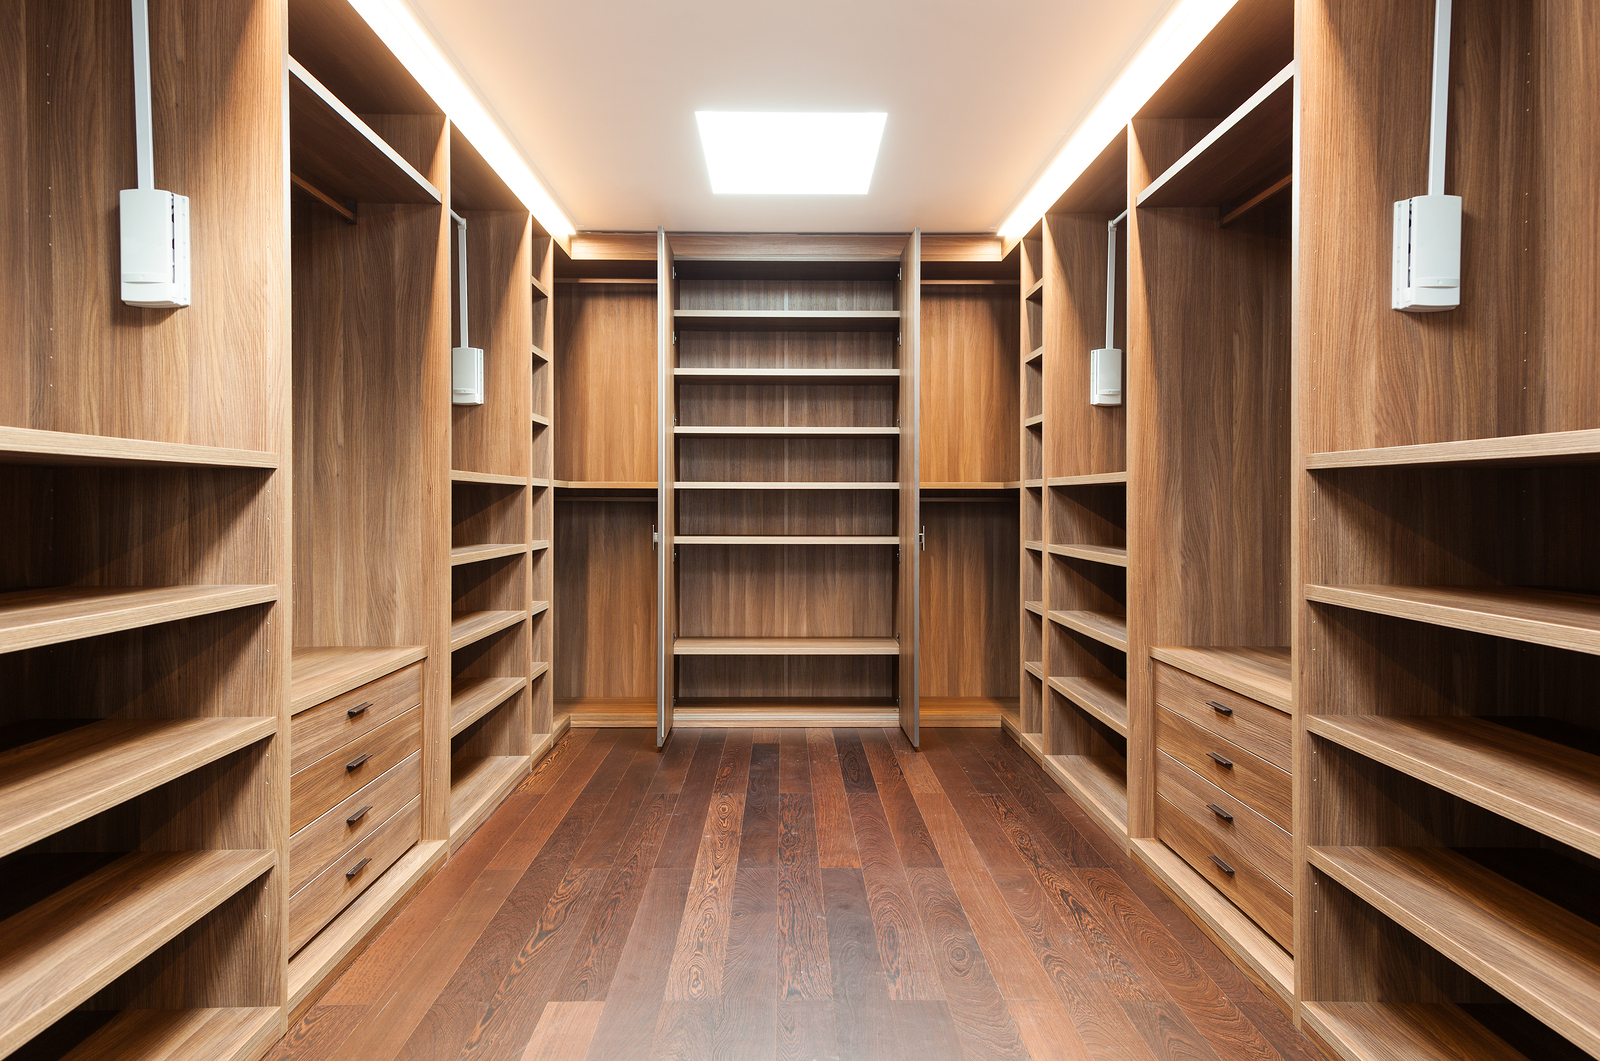 Best Walk In Closets how to find the best walk-in closet builder in new jersey | closet